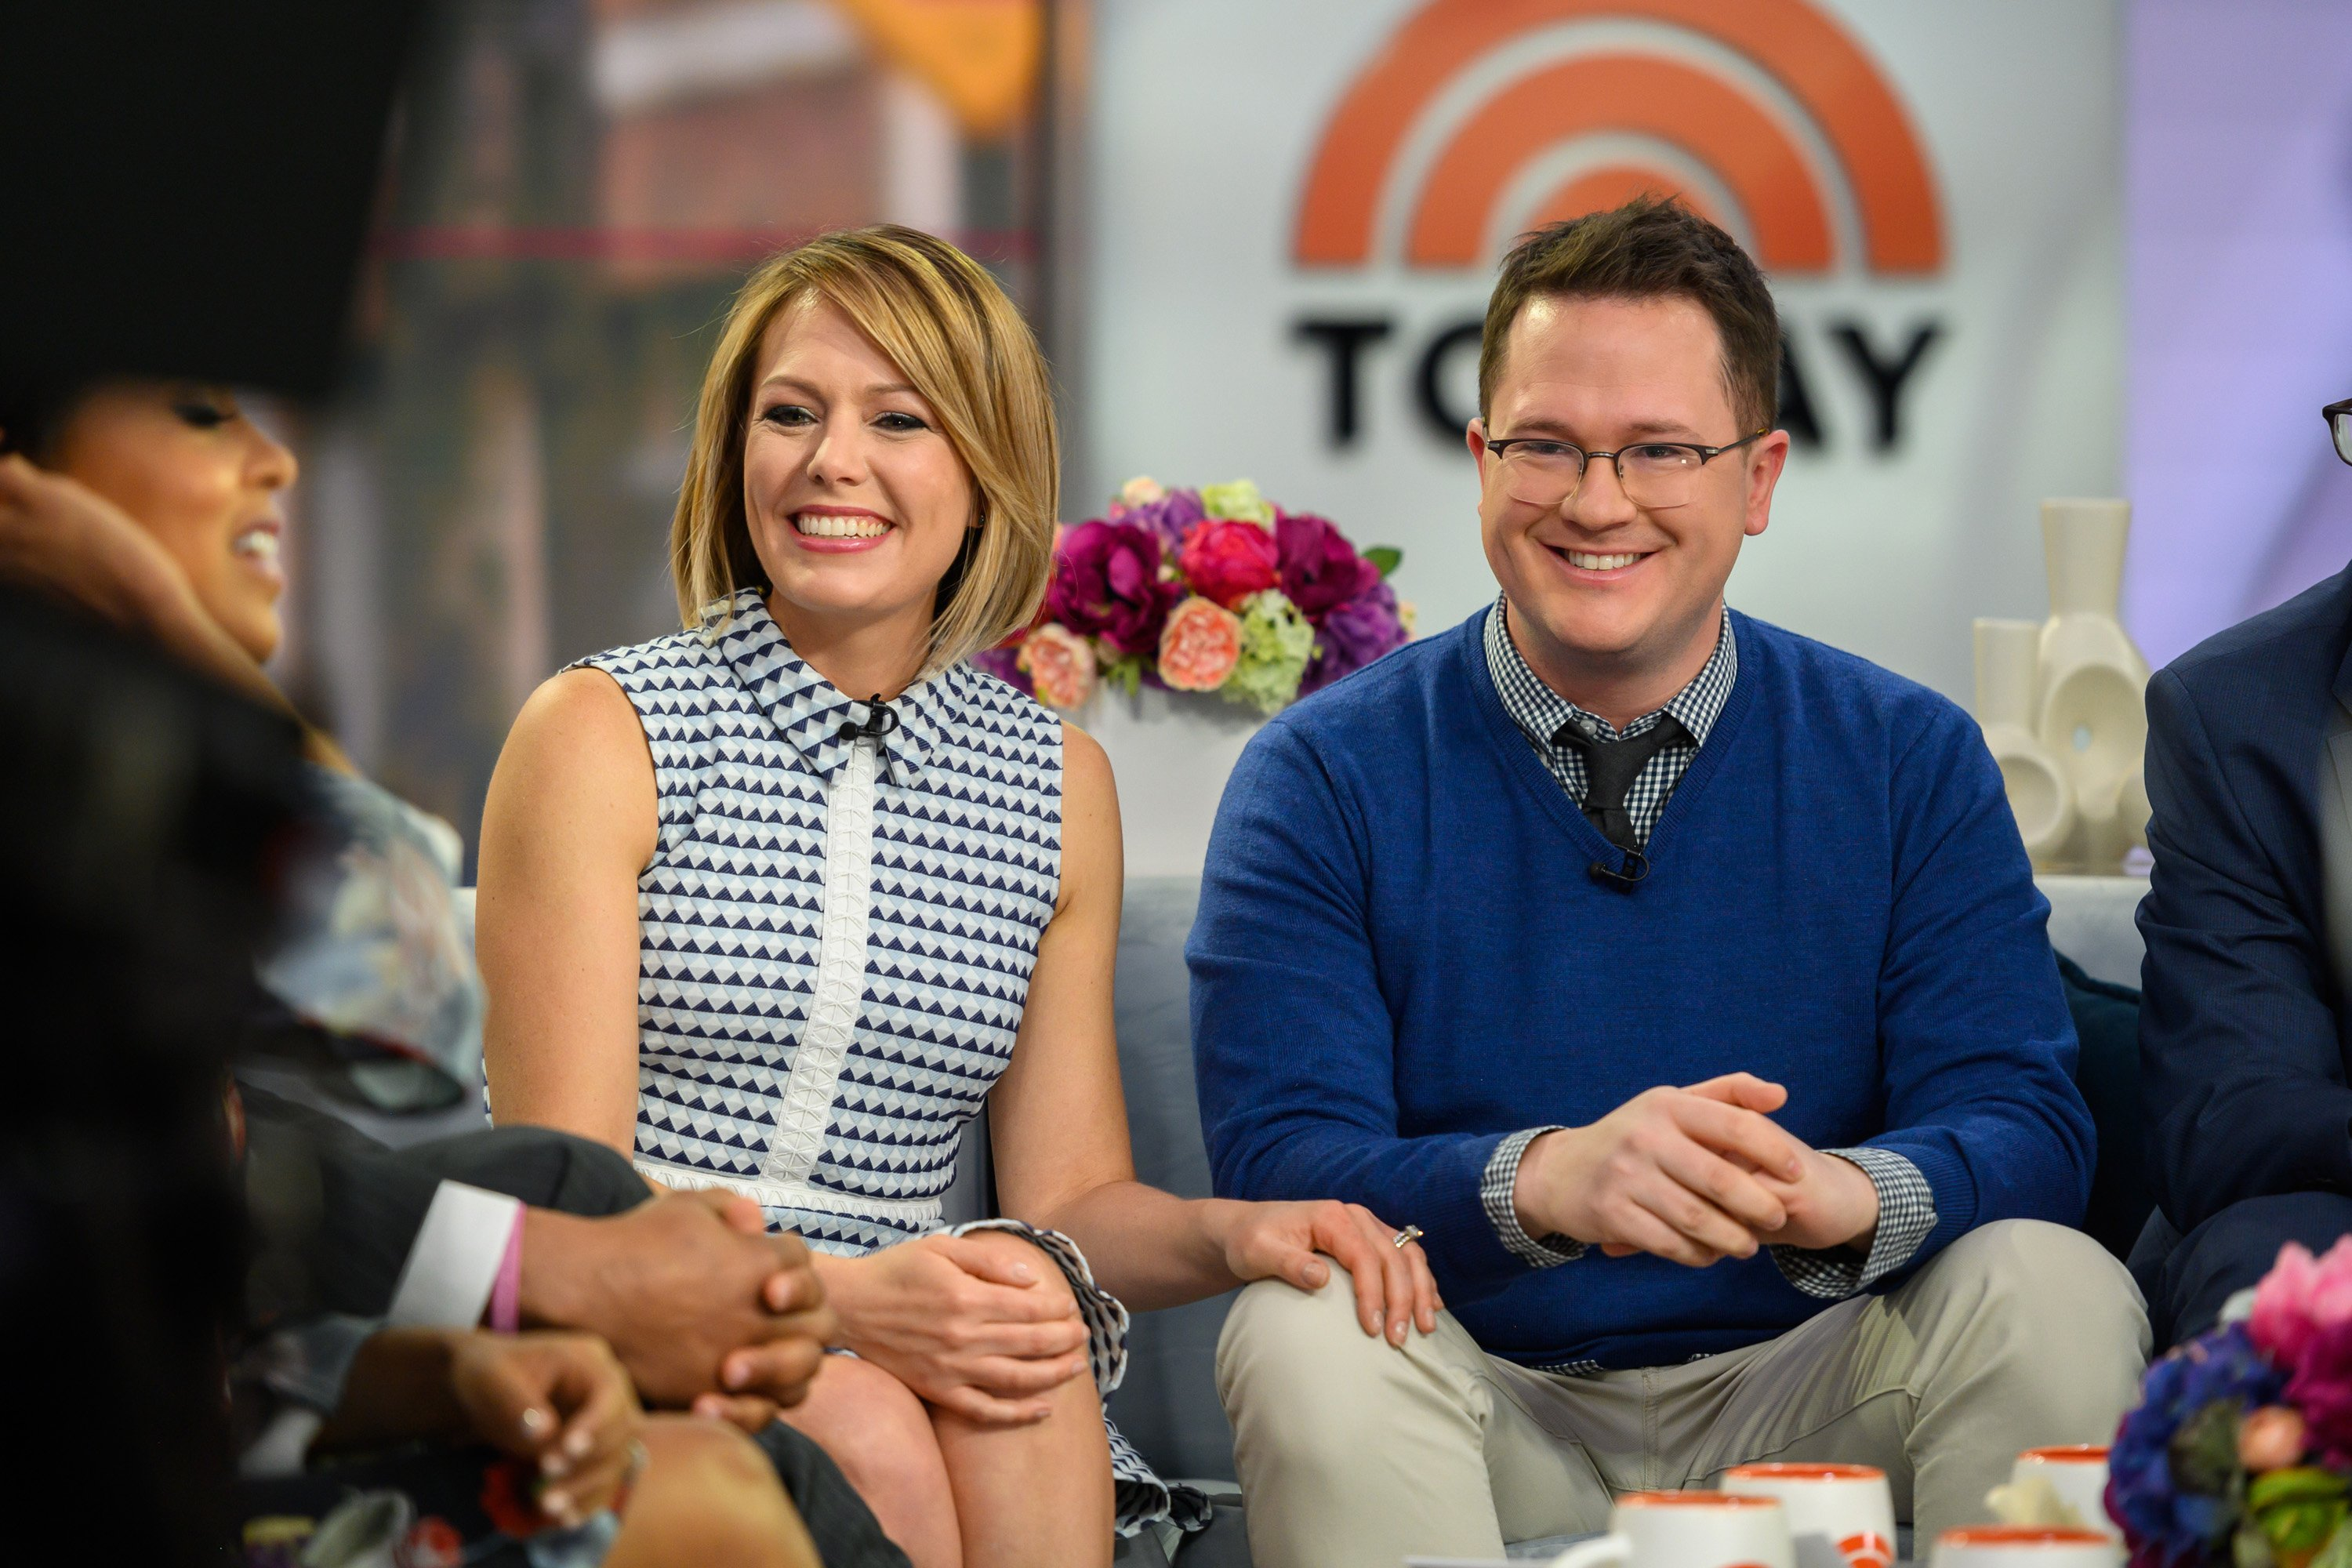 """Dyland Dreyer and husband Brian Fichera on the set of the """"Today Show"""" on April 22, 2019 